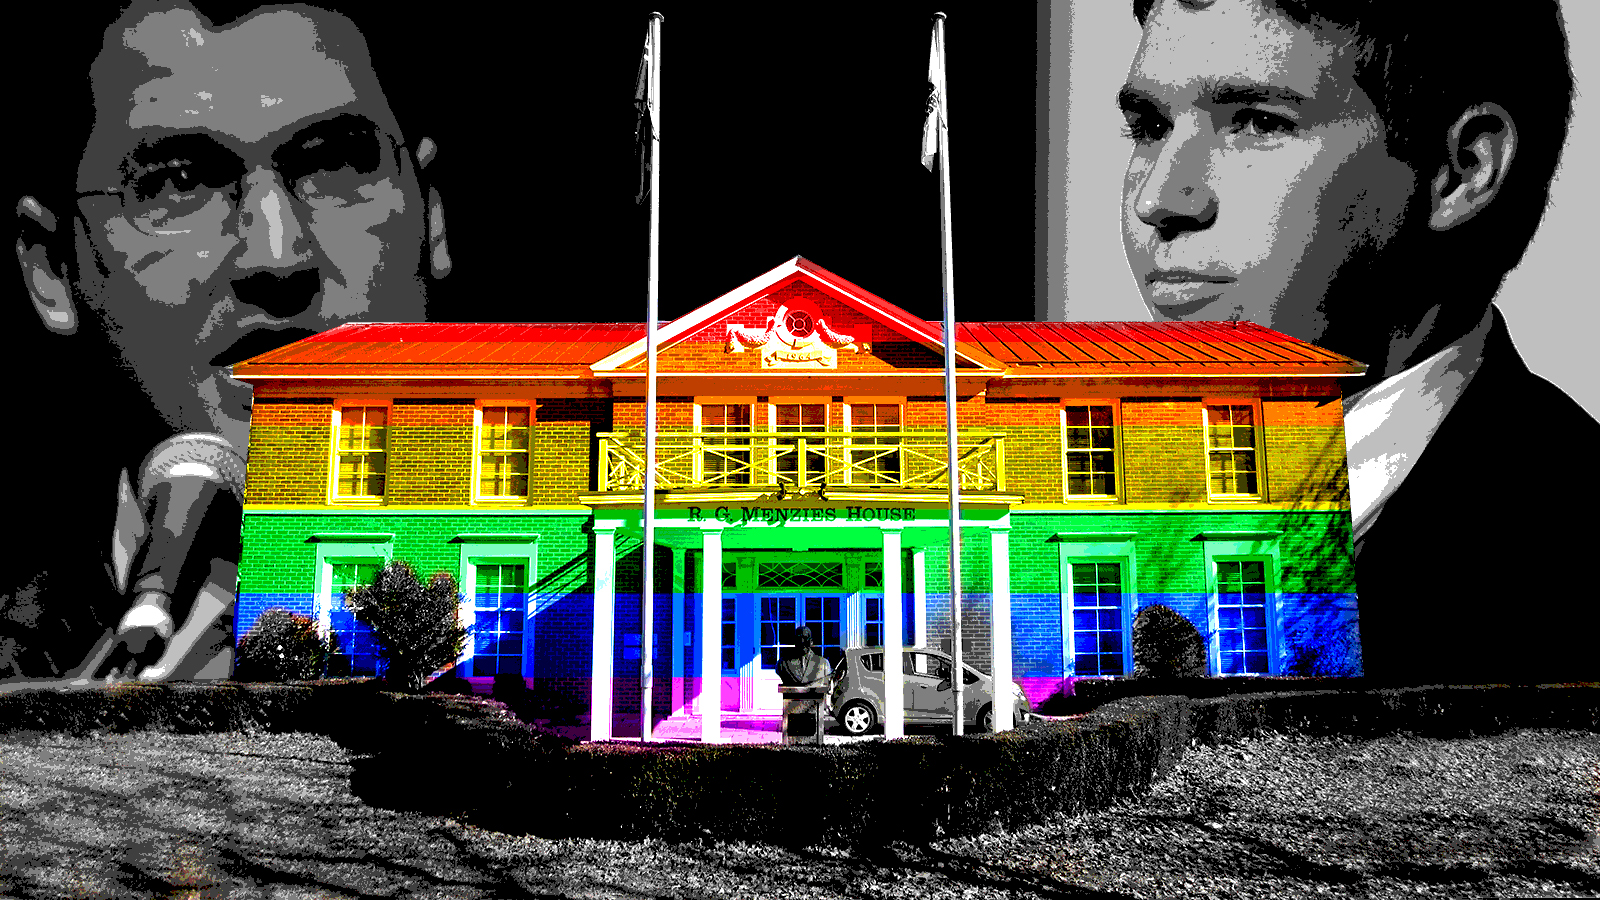 The Liberal Party National Headquarters (RG Menzies House) with a pride flag superimposed over it. The faces of Alistair Coe and Zed Seselja floating in the background.